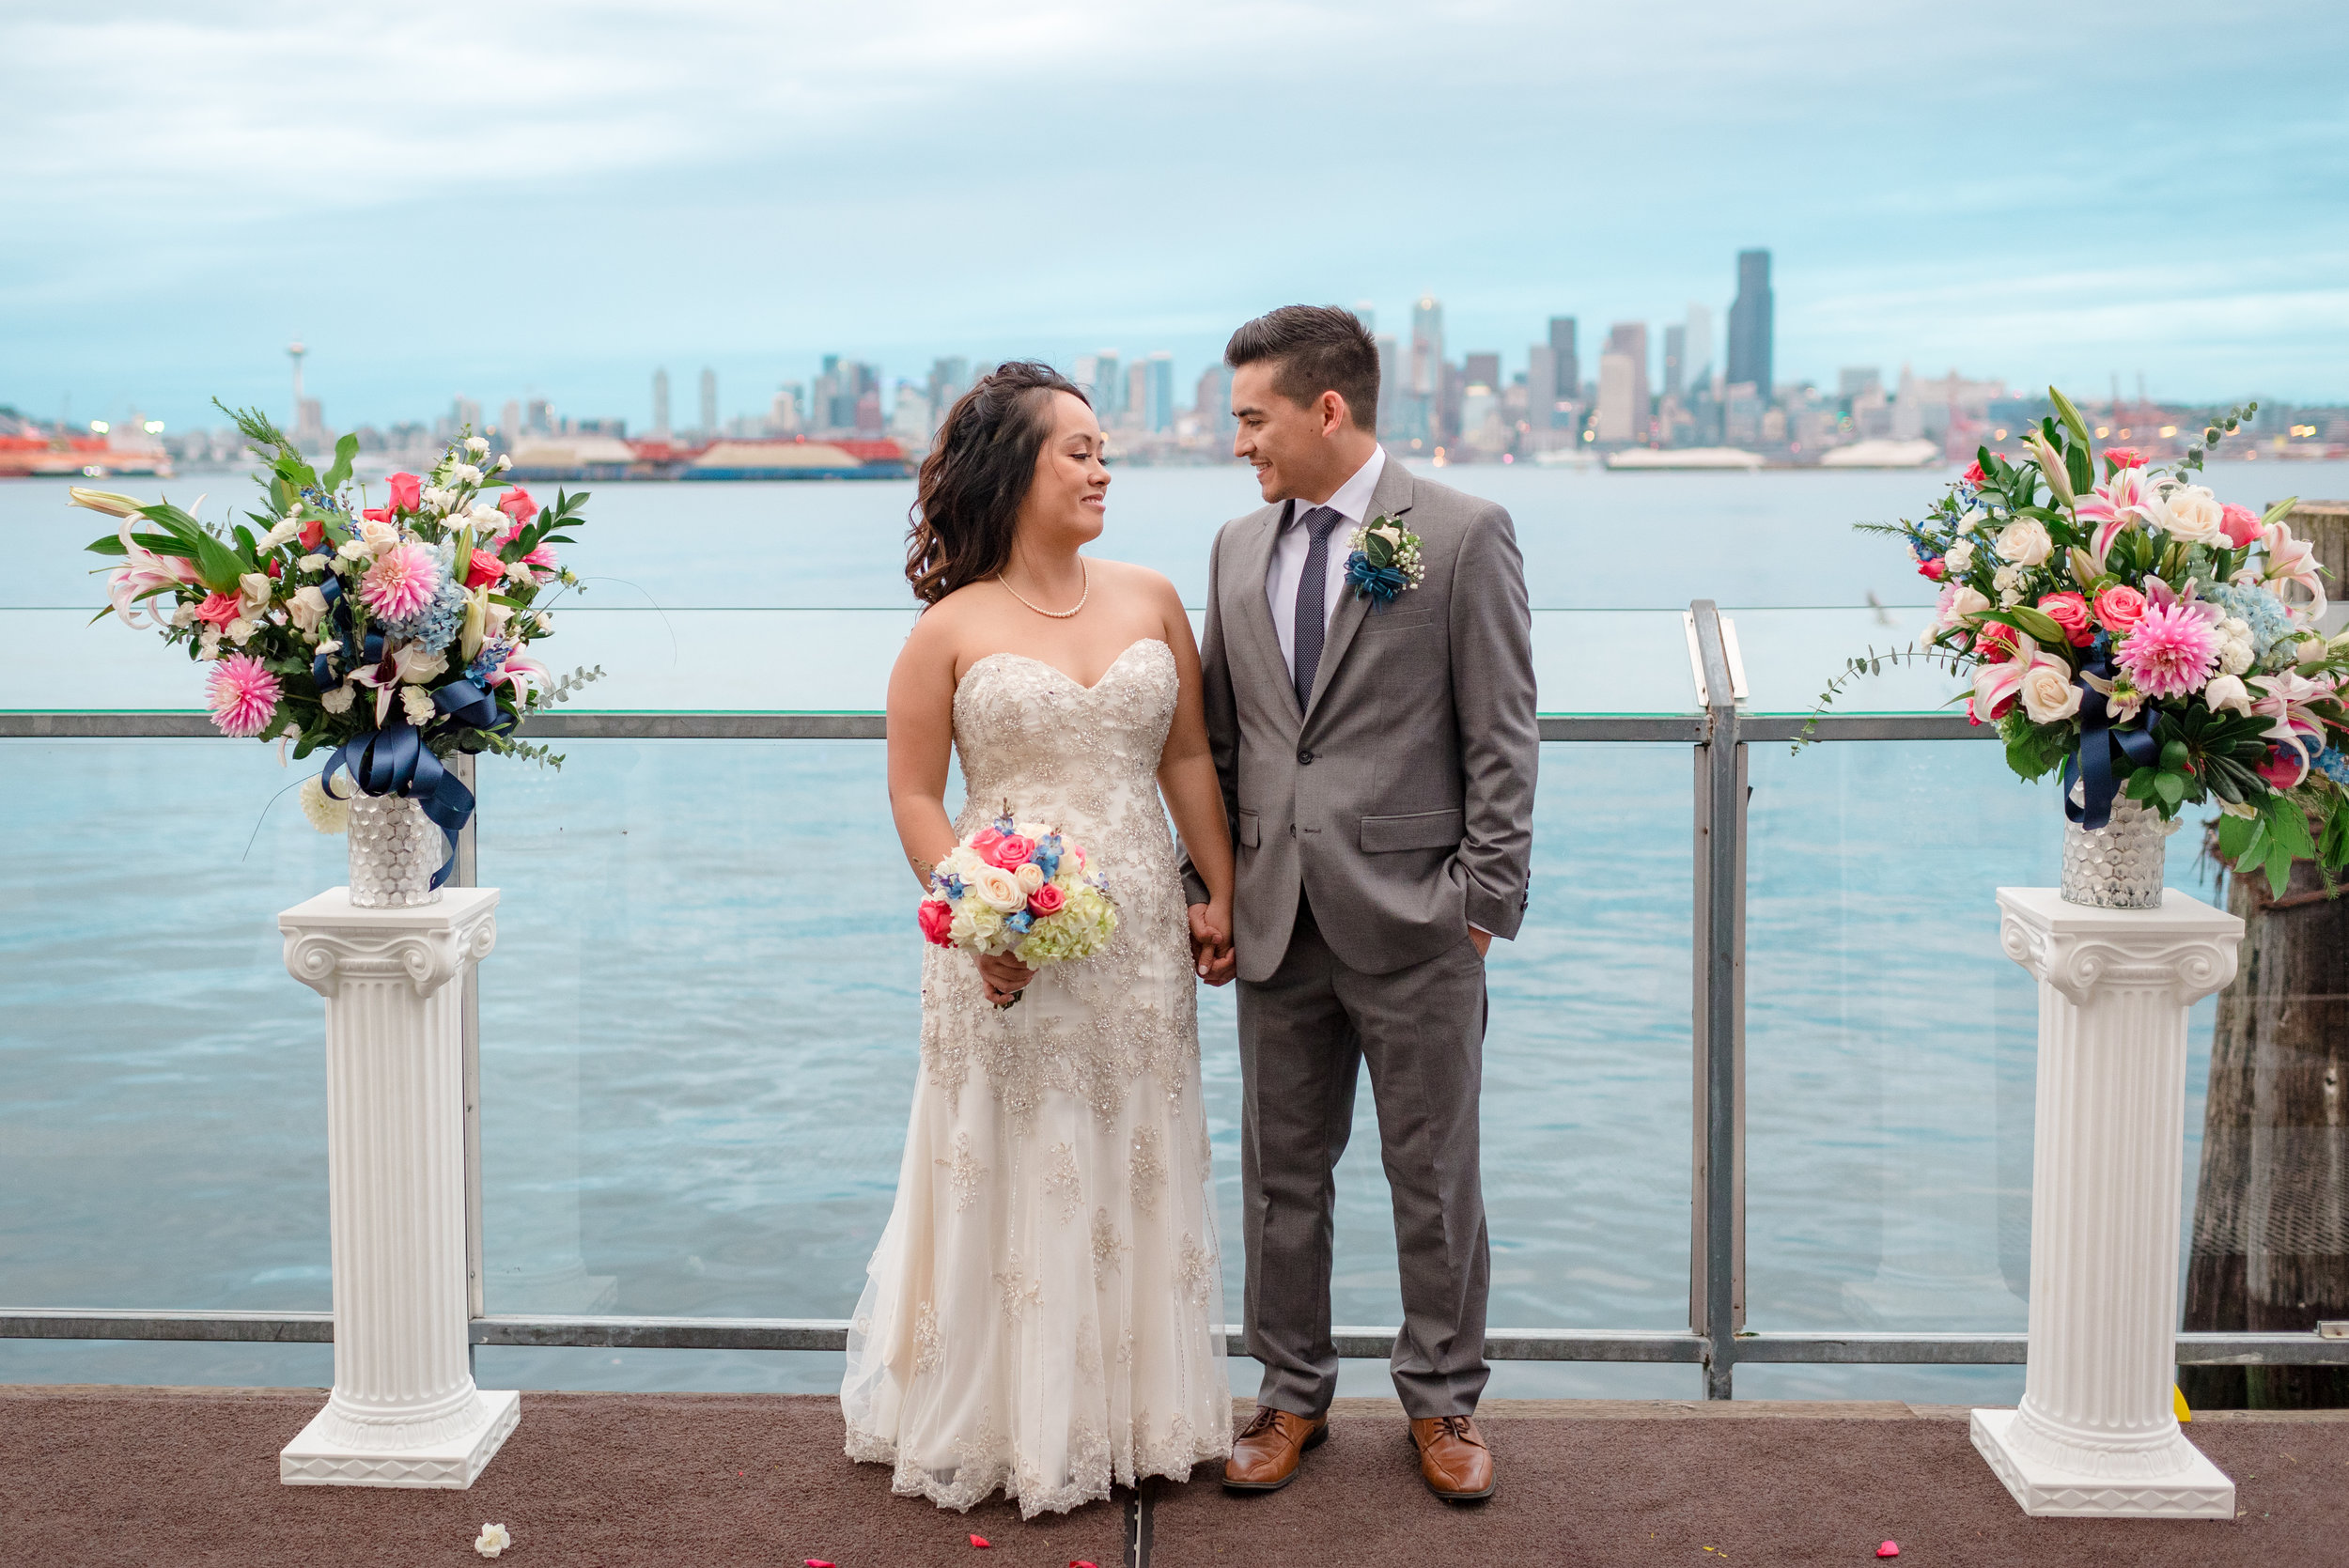 2018-09-09-Marcy _ Mark Wedding-NIKON D750-2298.jpg